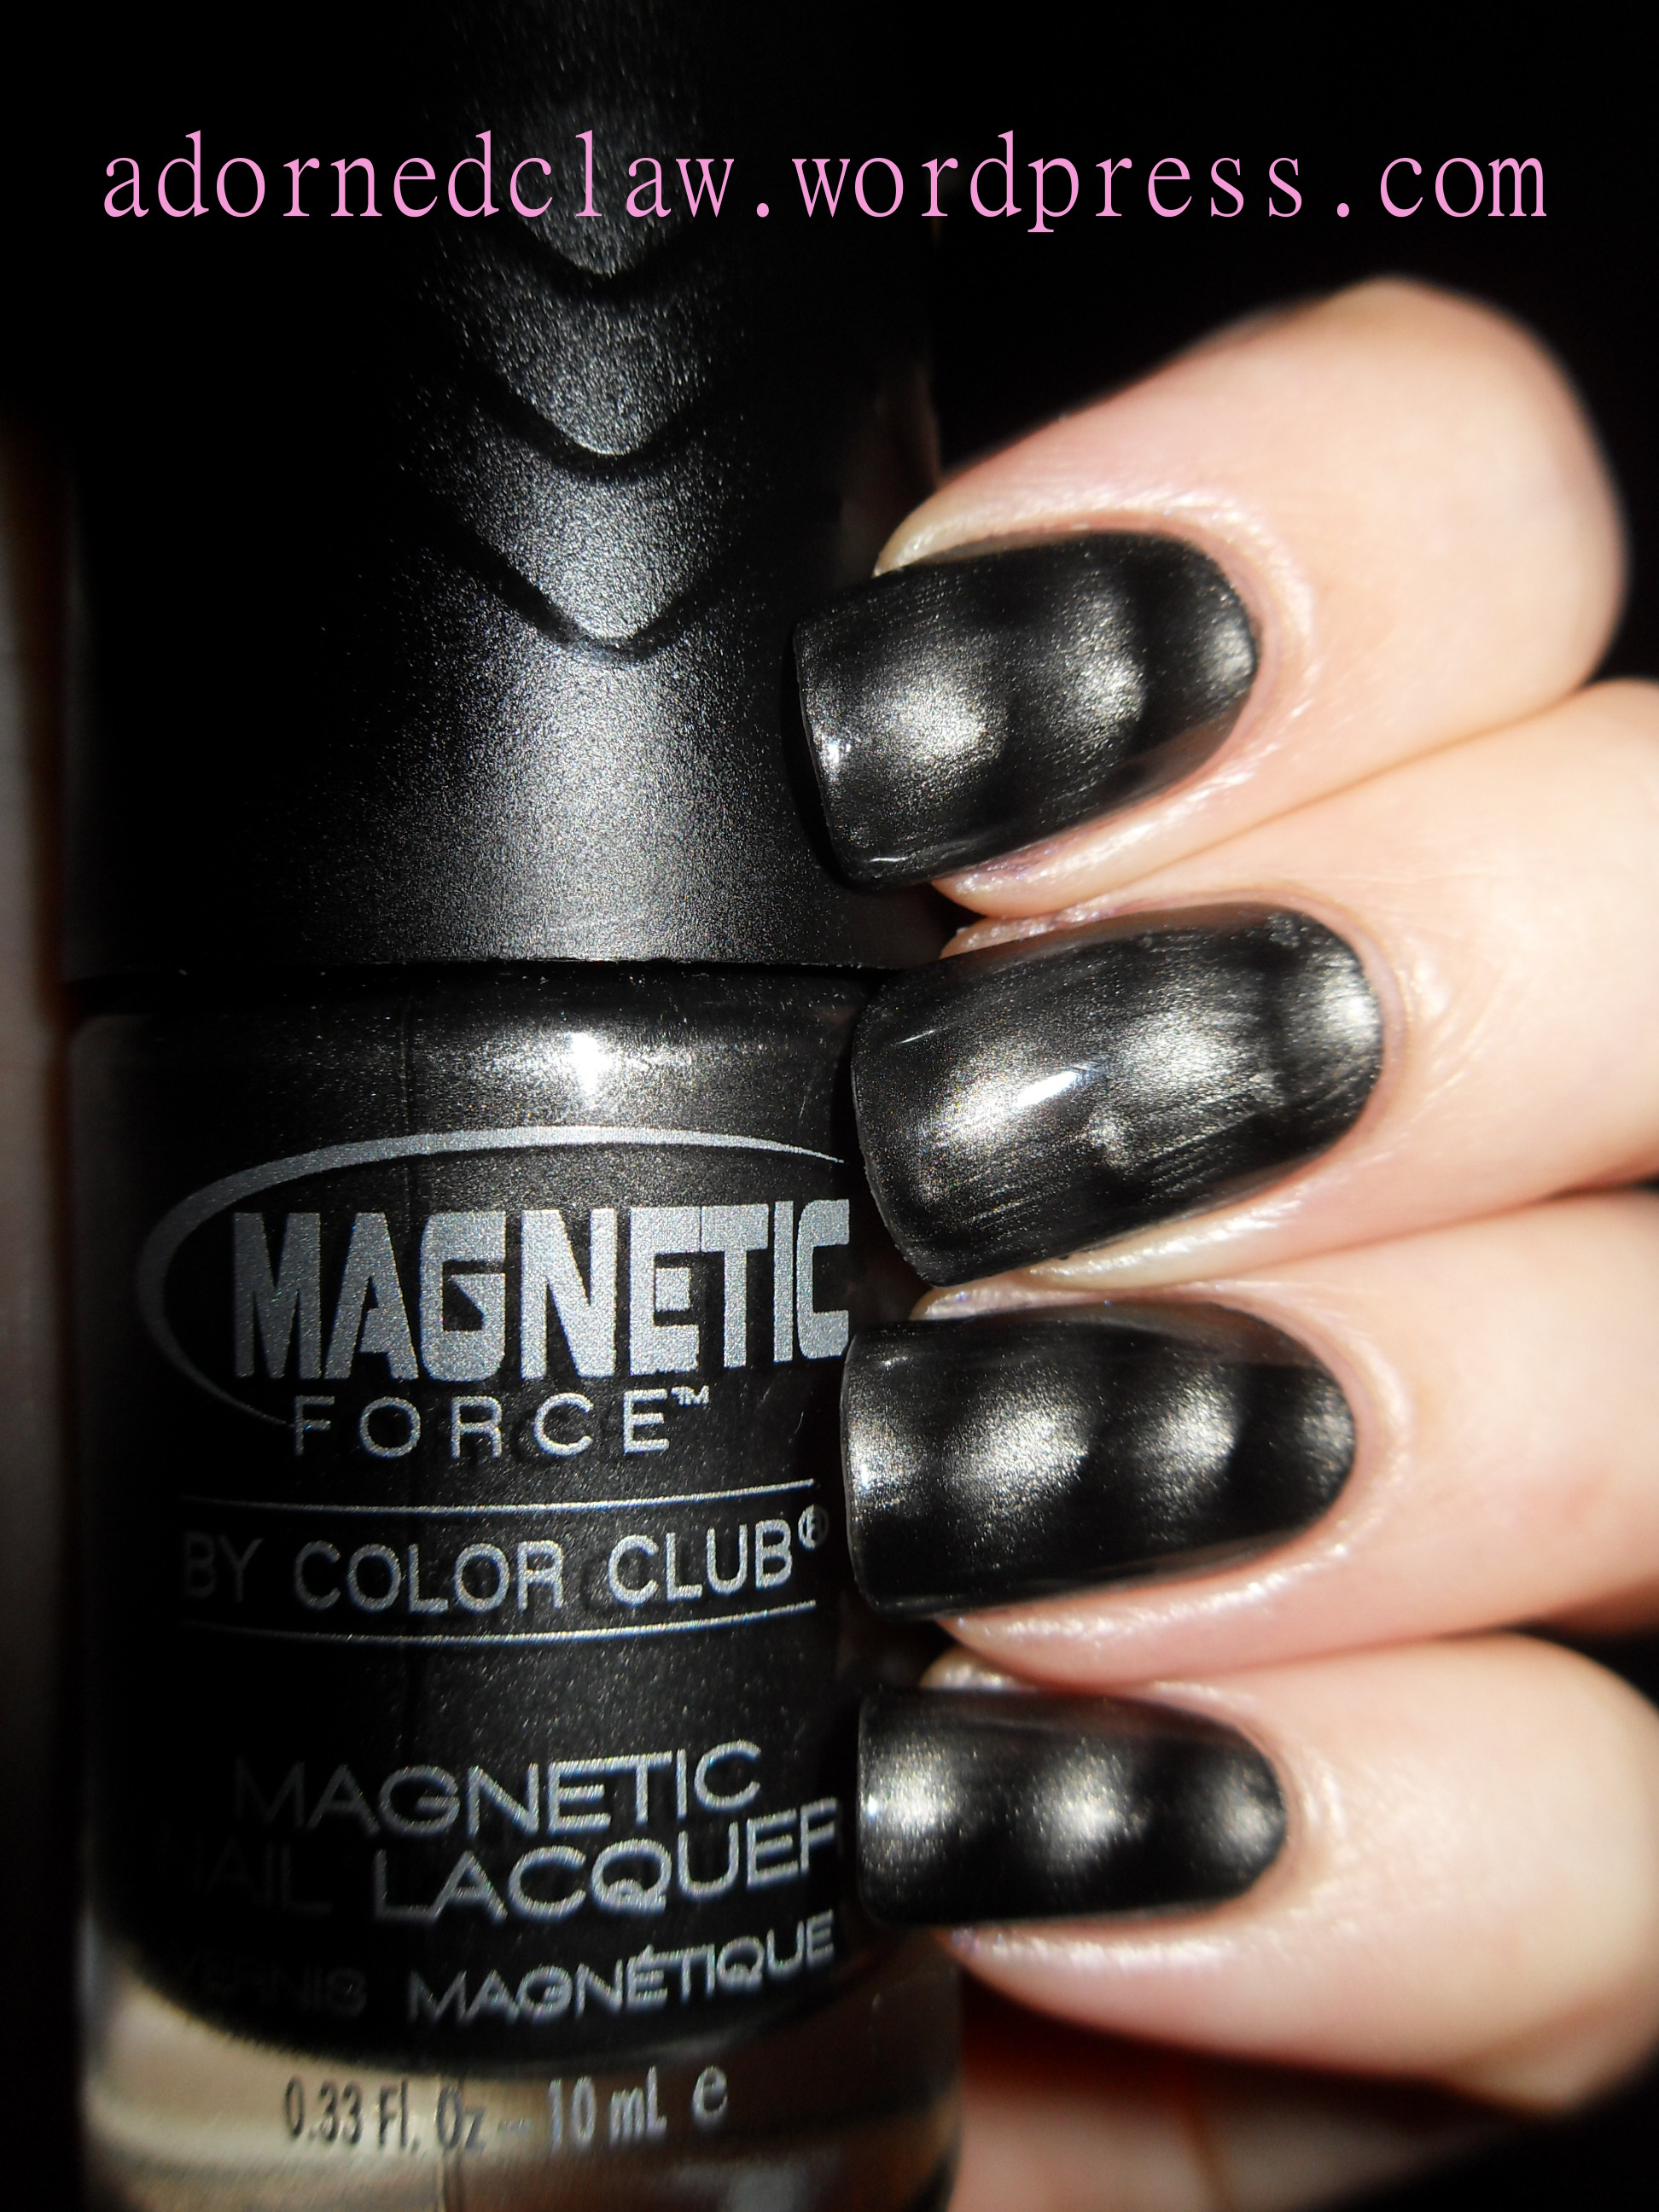 magnetic force | The Adorned Claw